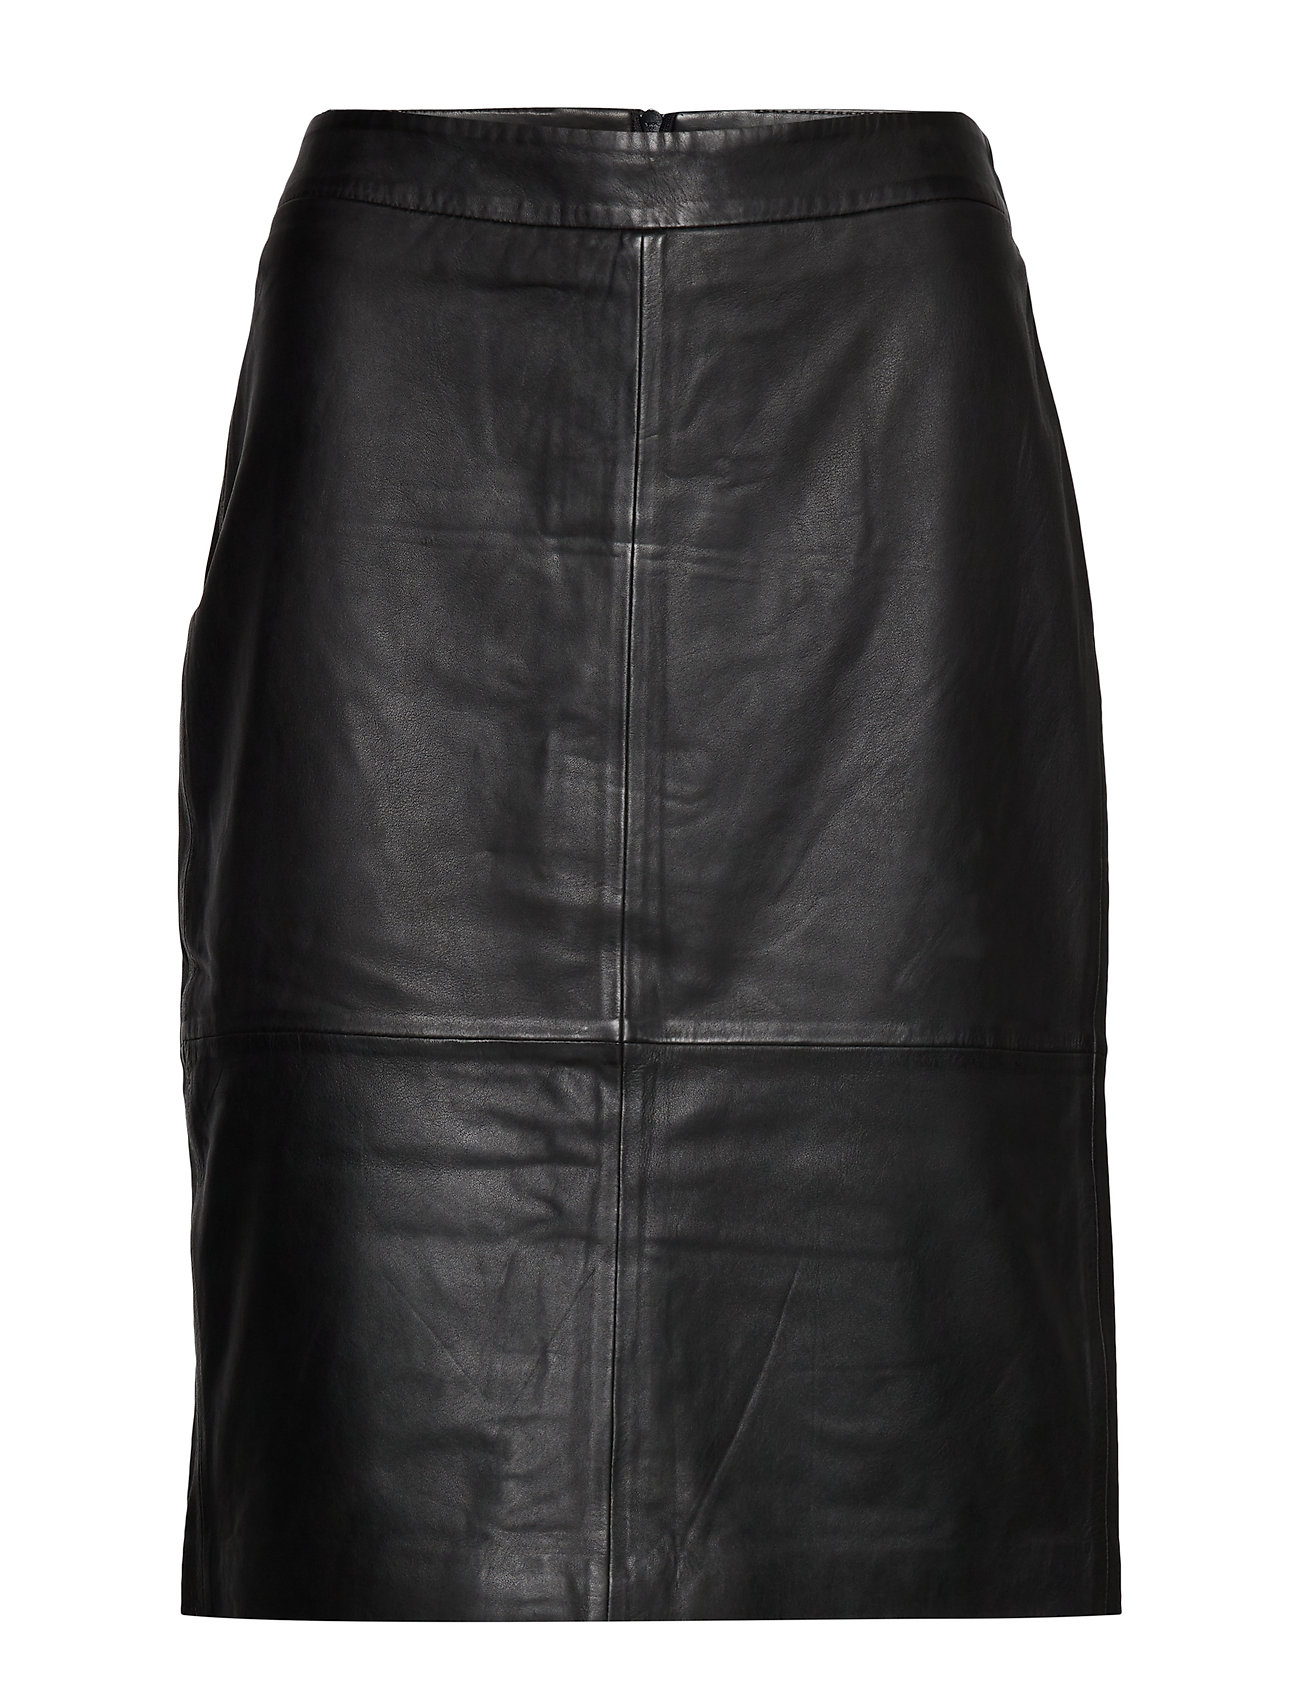 Gerry Weber SKIRT LEATHER - BLACK